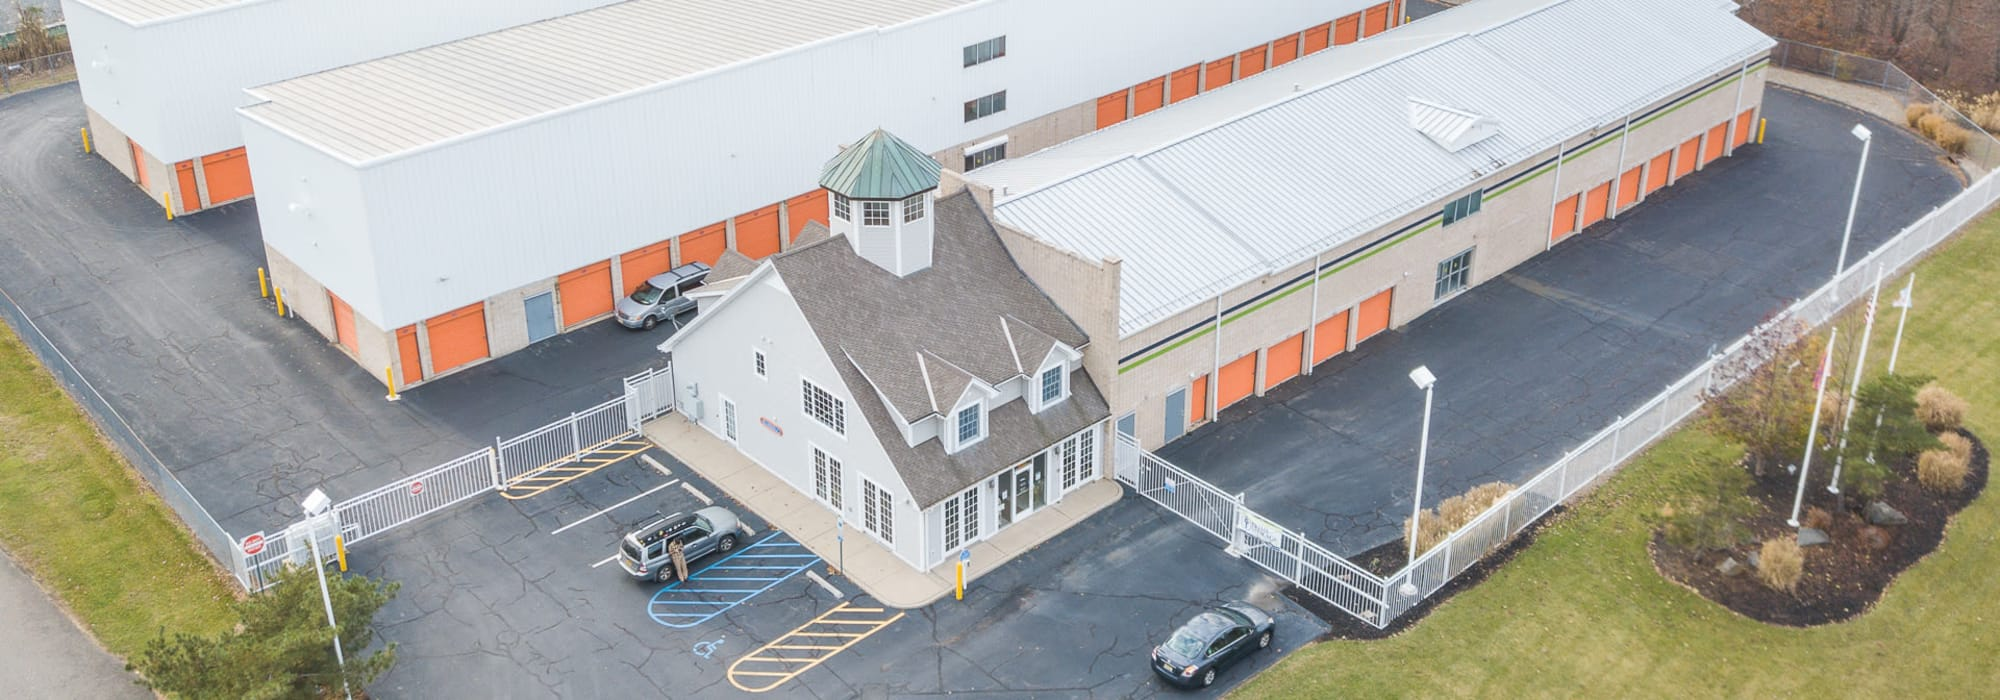 Prime Storage in North Brunswick Township, NJ